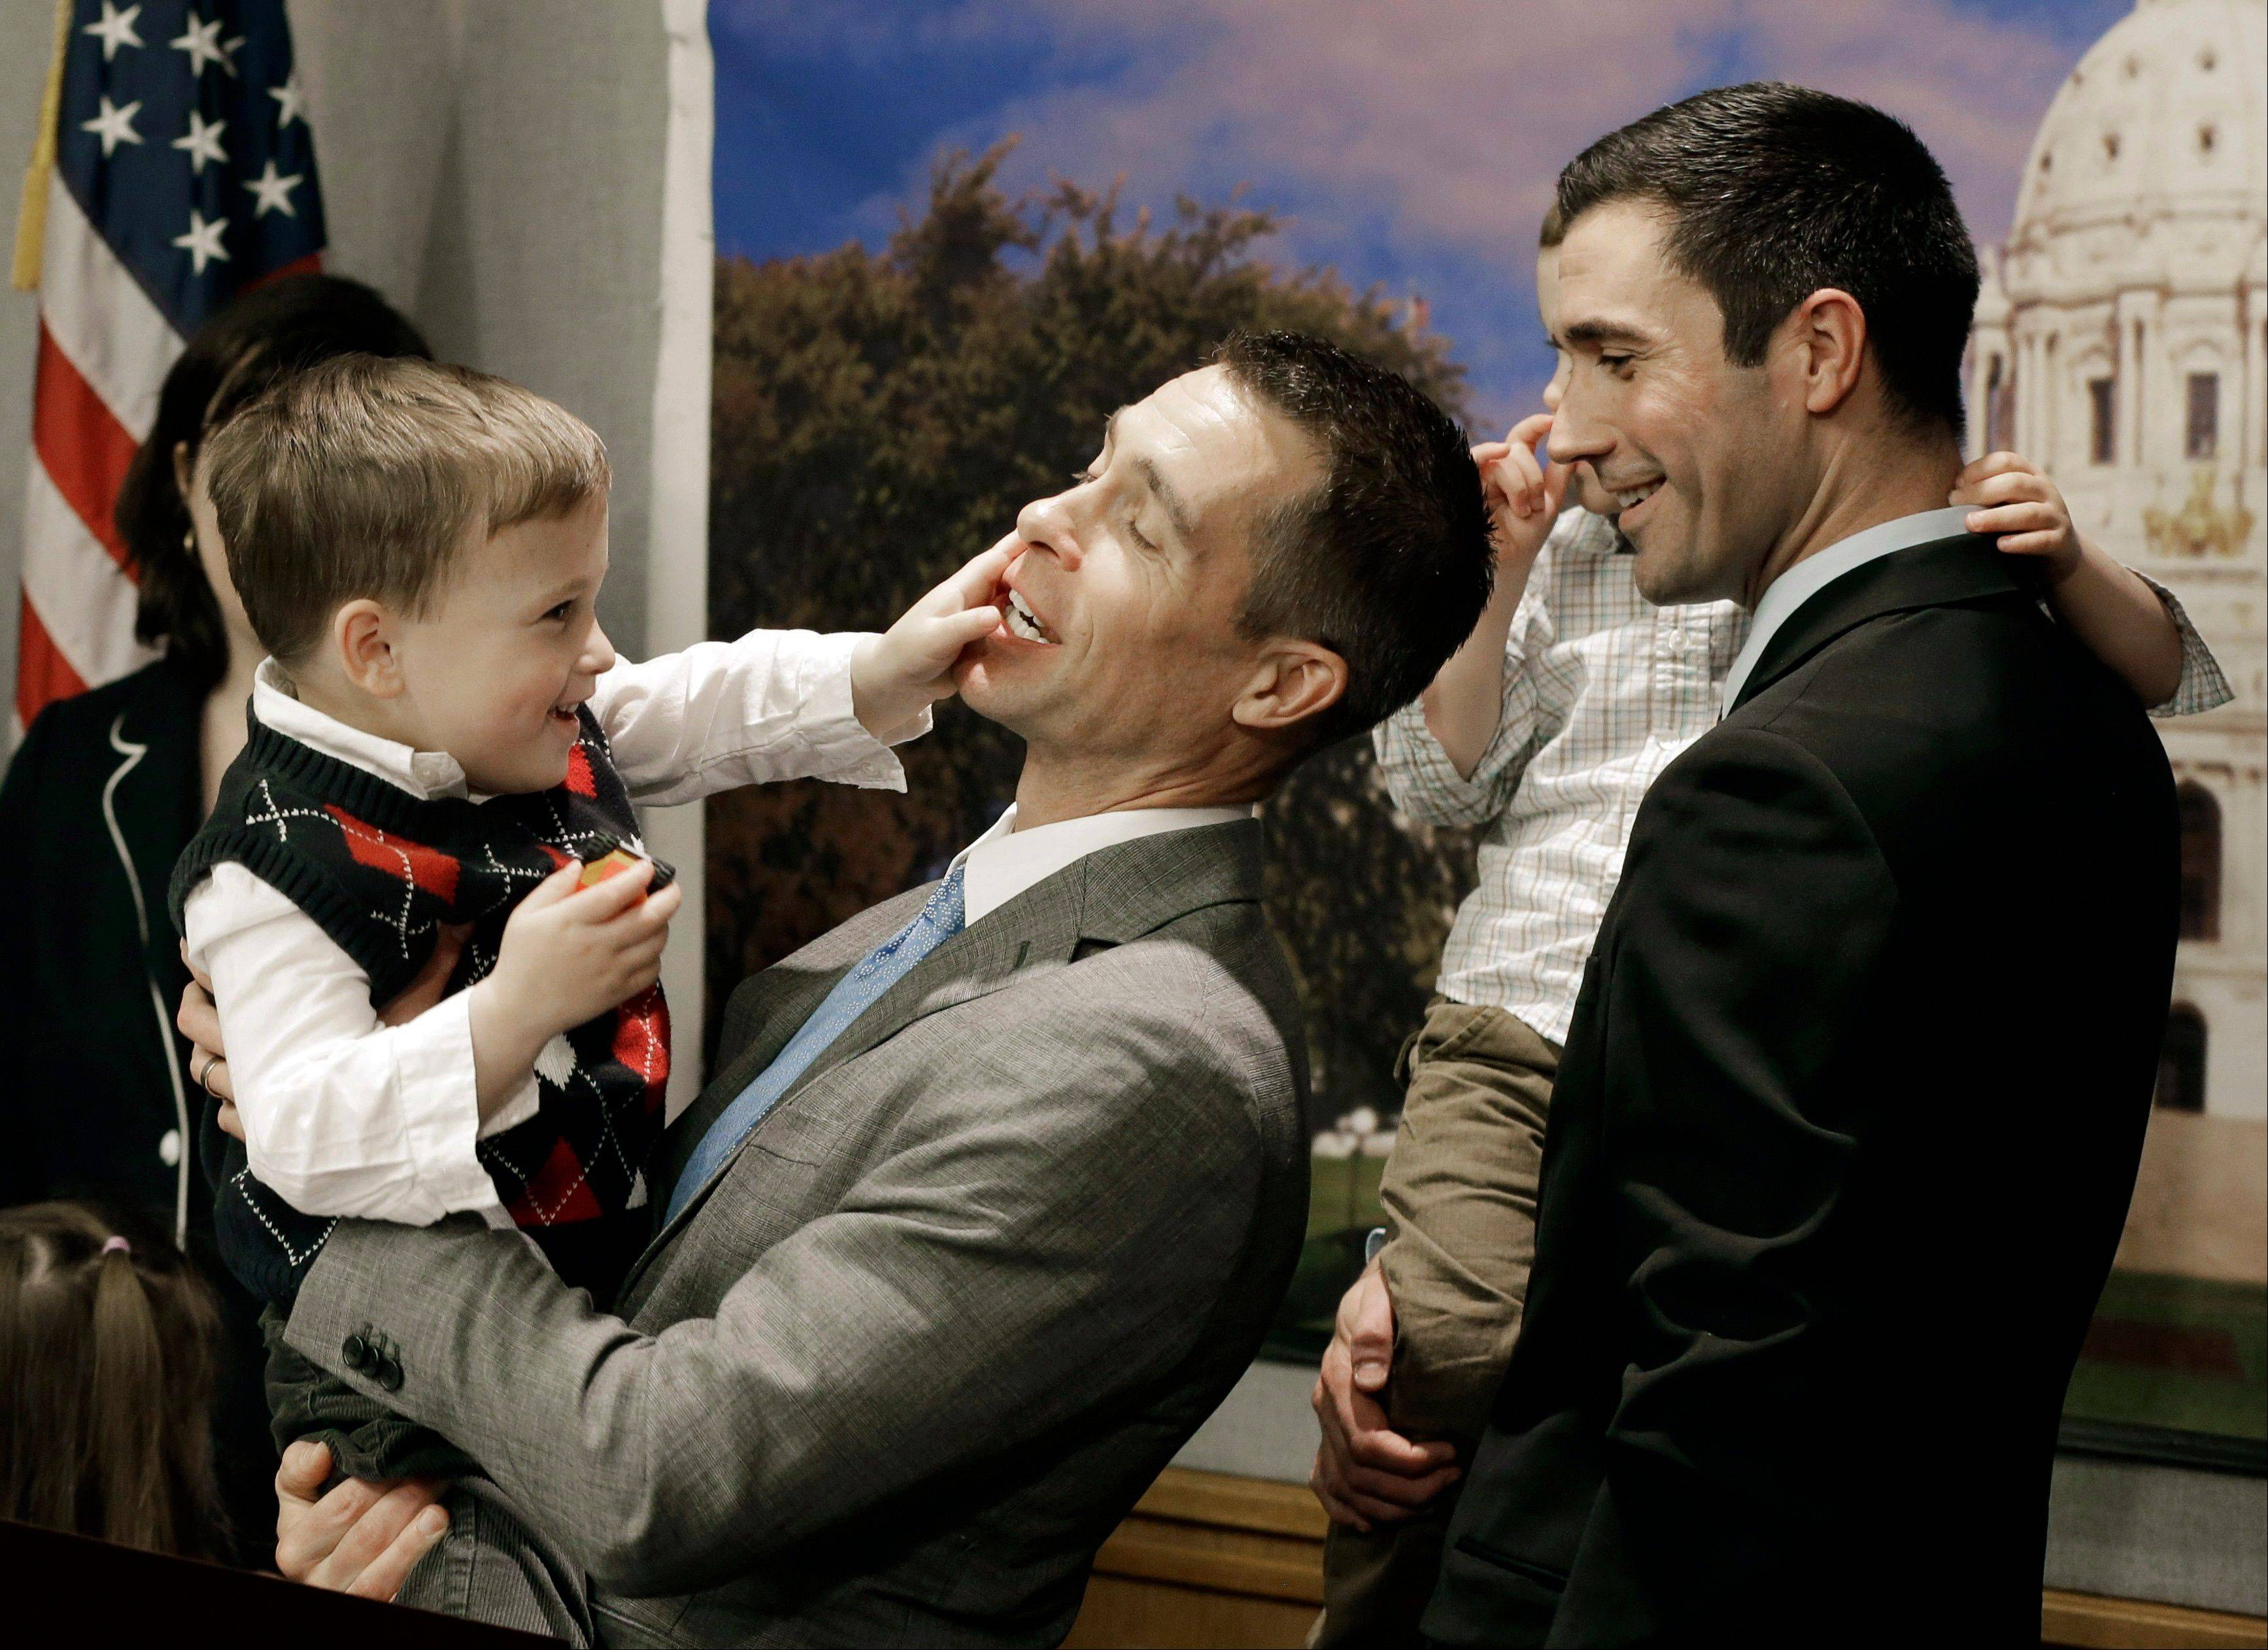 Dr. Paul Melchert, left, gets interrupted Wednesday by his son, Emmett, as he attempts to address the media while his partner James Zimerman, right, holds Emmett�s twin brother, Gabriel, during a news conference in St. Paul, Minn. Lawmakers introduced a bill Wednesday to legalize gay marriage in Minnesota.